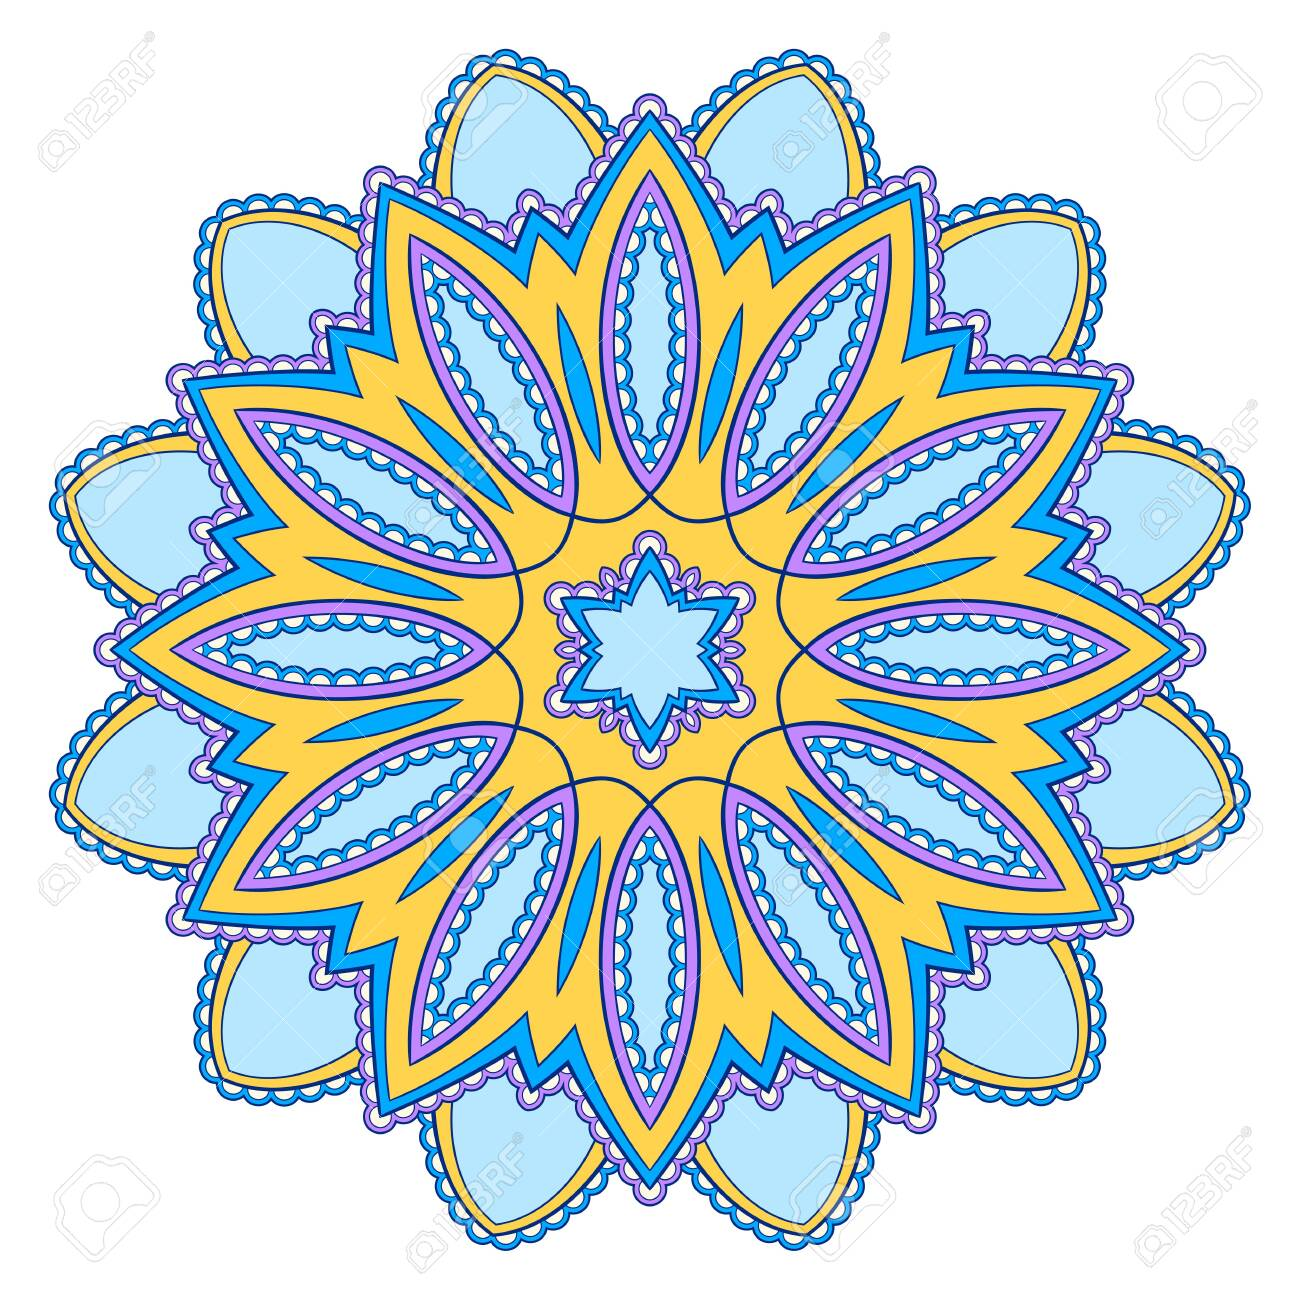 Decorative colorful ethnic mandala pattern. Design element for greeting card, banner or poster in oriental style. Hand drawn illustration - 123415995